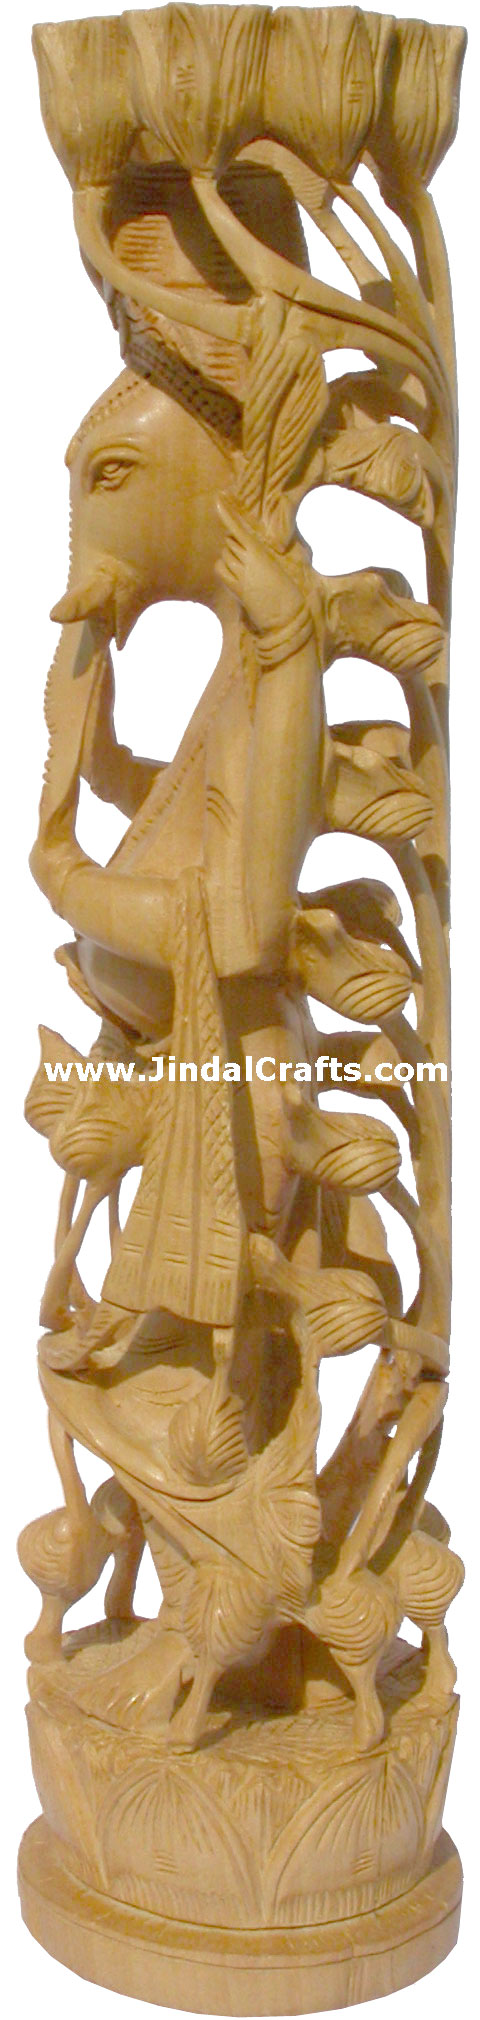 Wood Sculpture Lord Ganesha Figureine Hand Work India